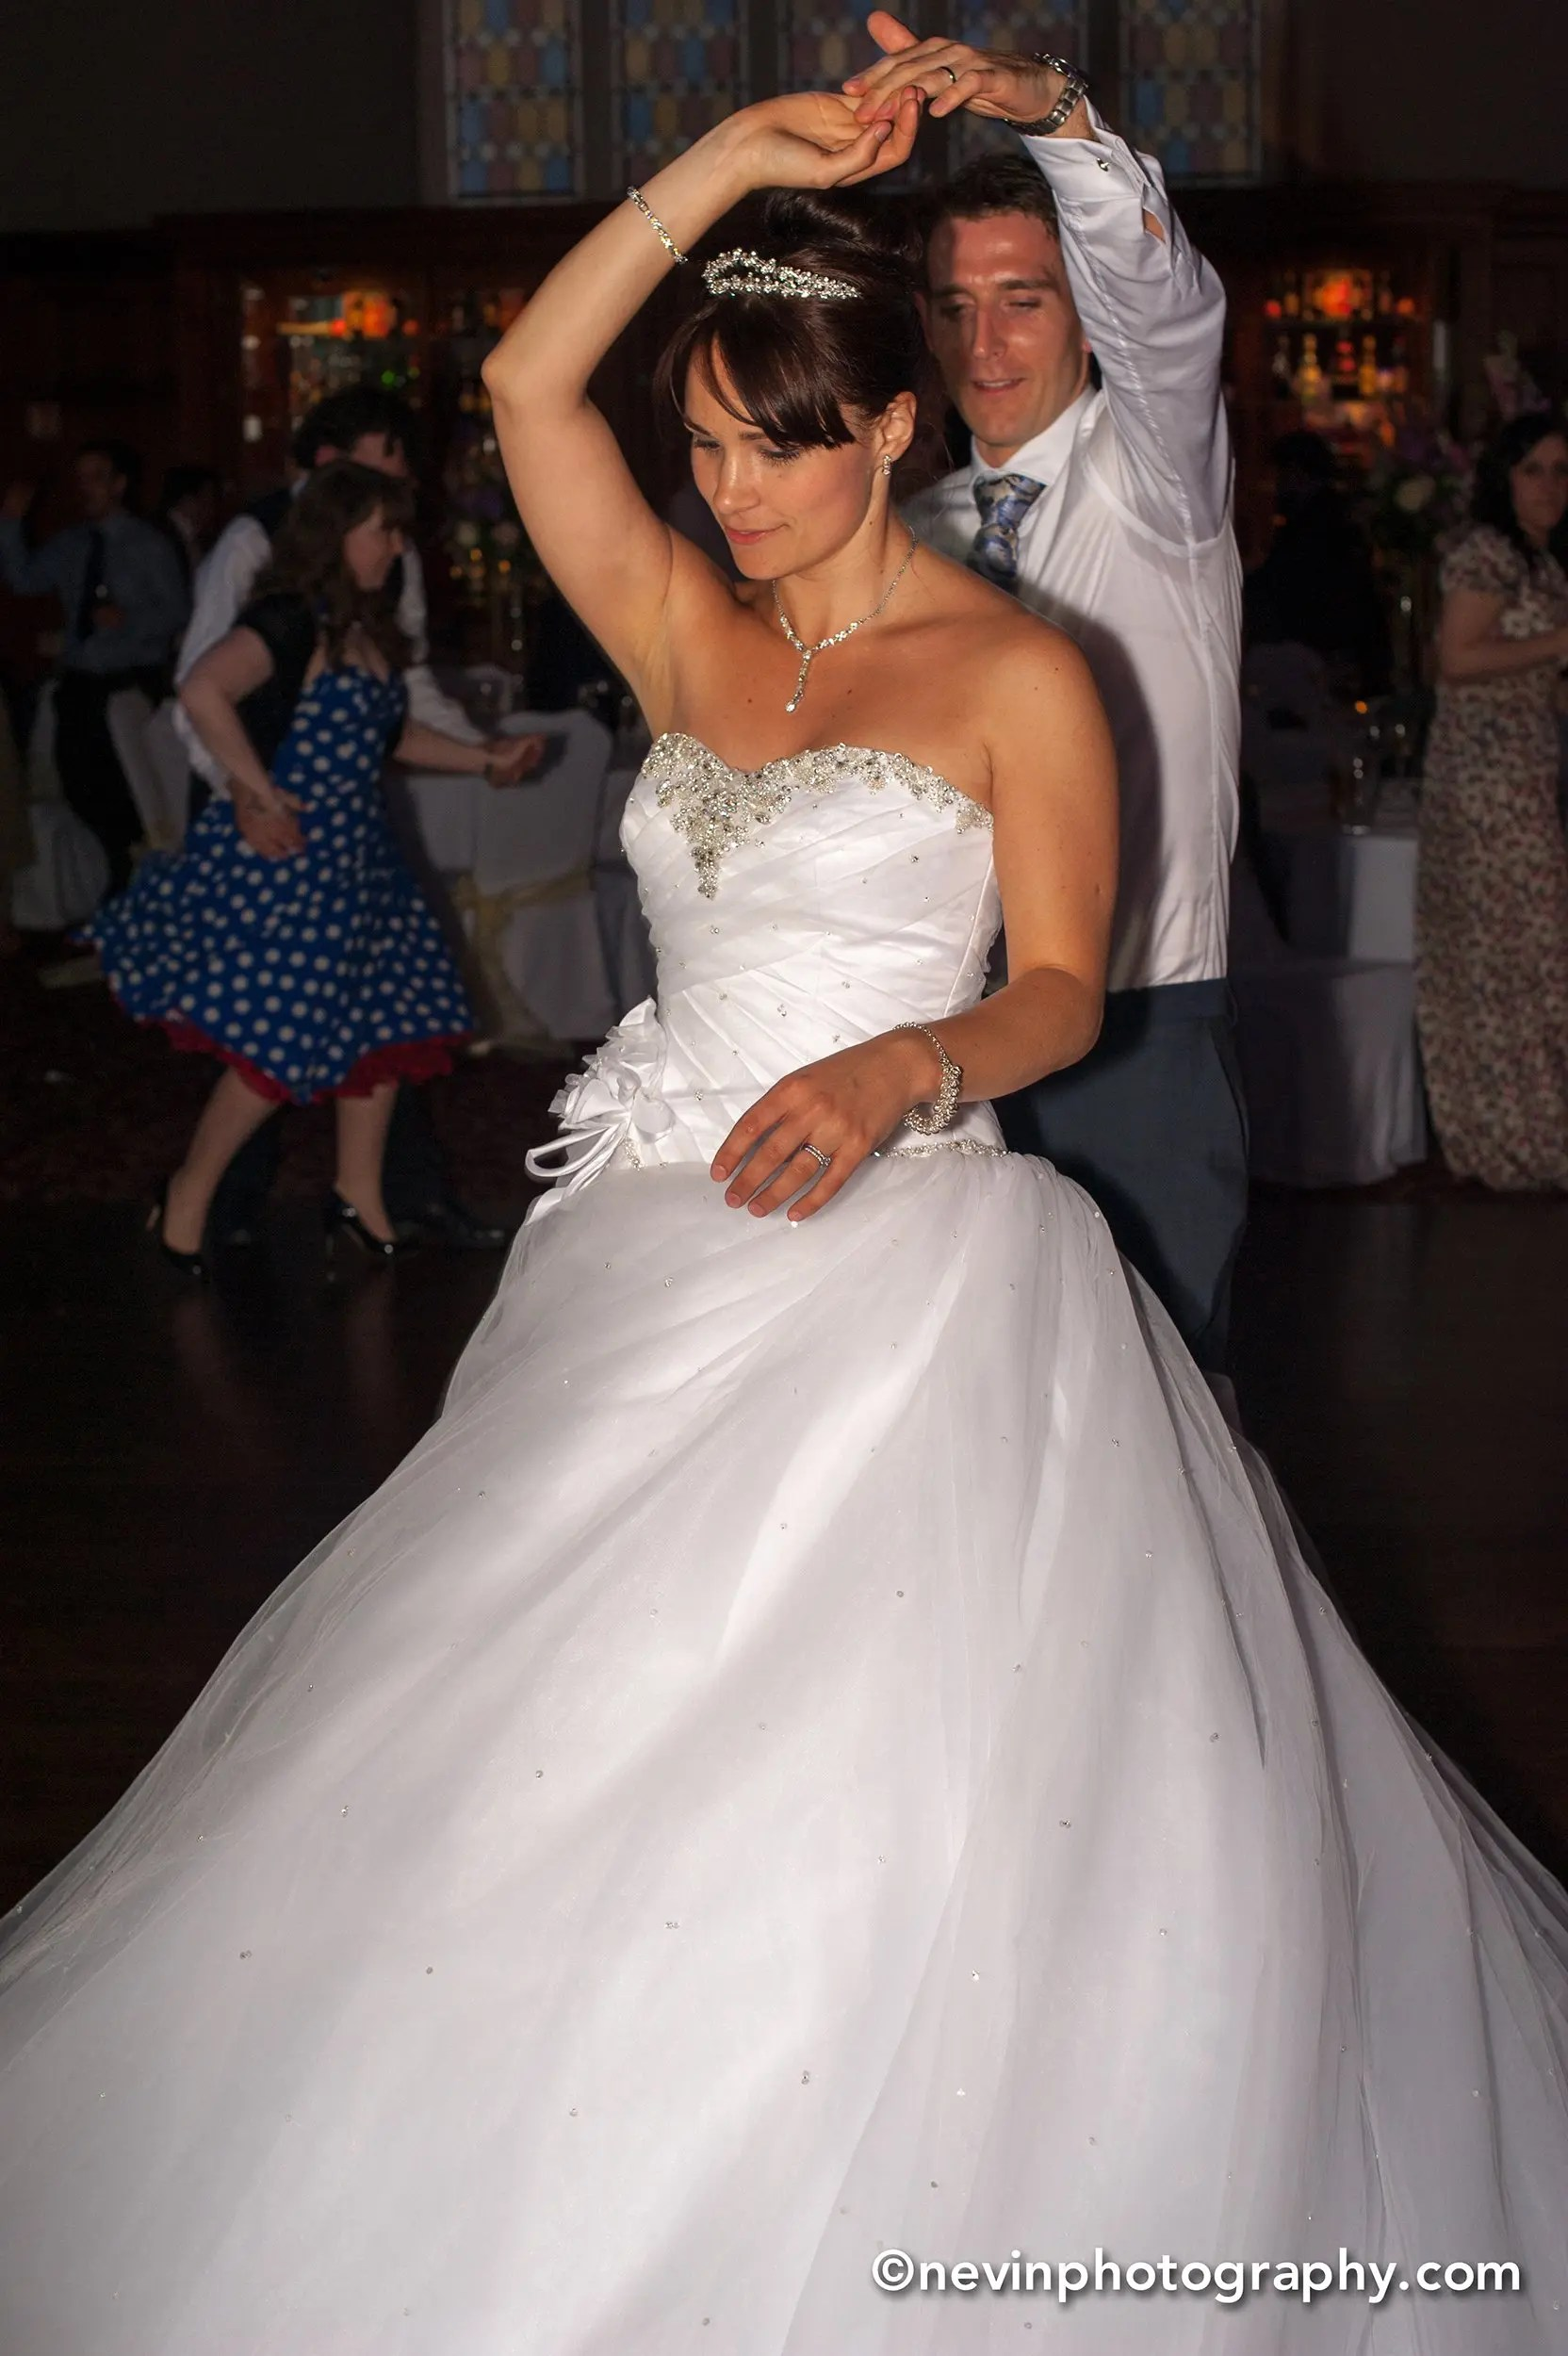 Swirling couple during dance as husband and wife